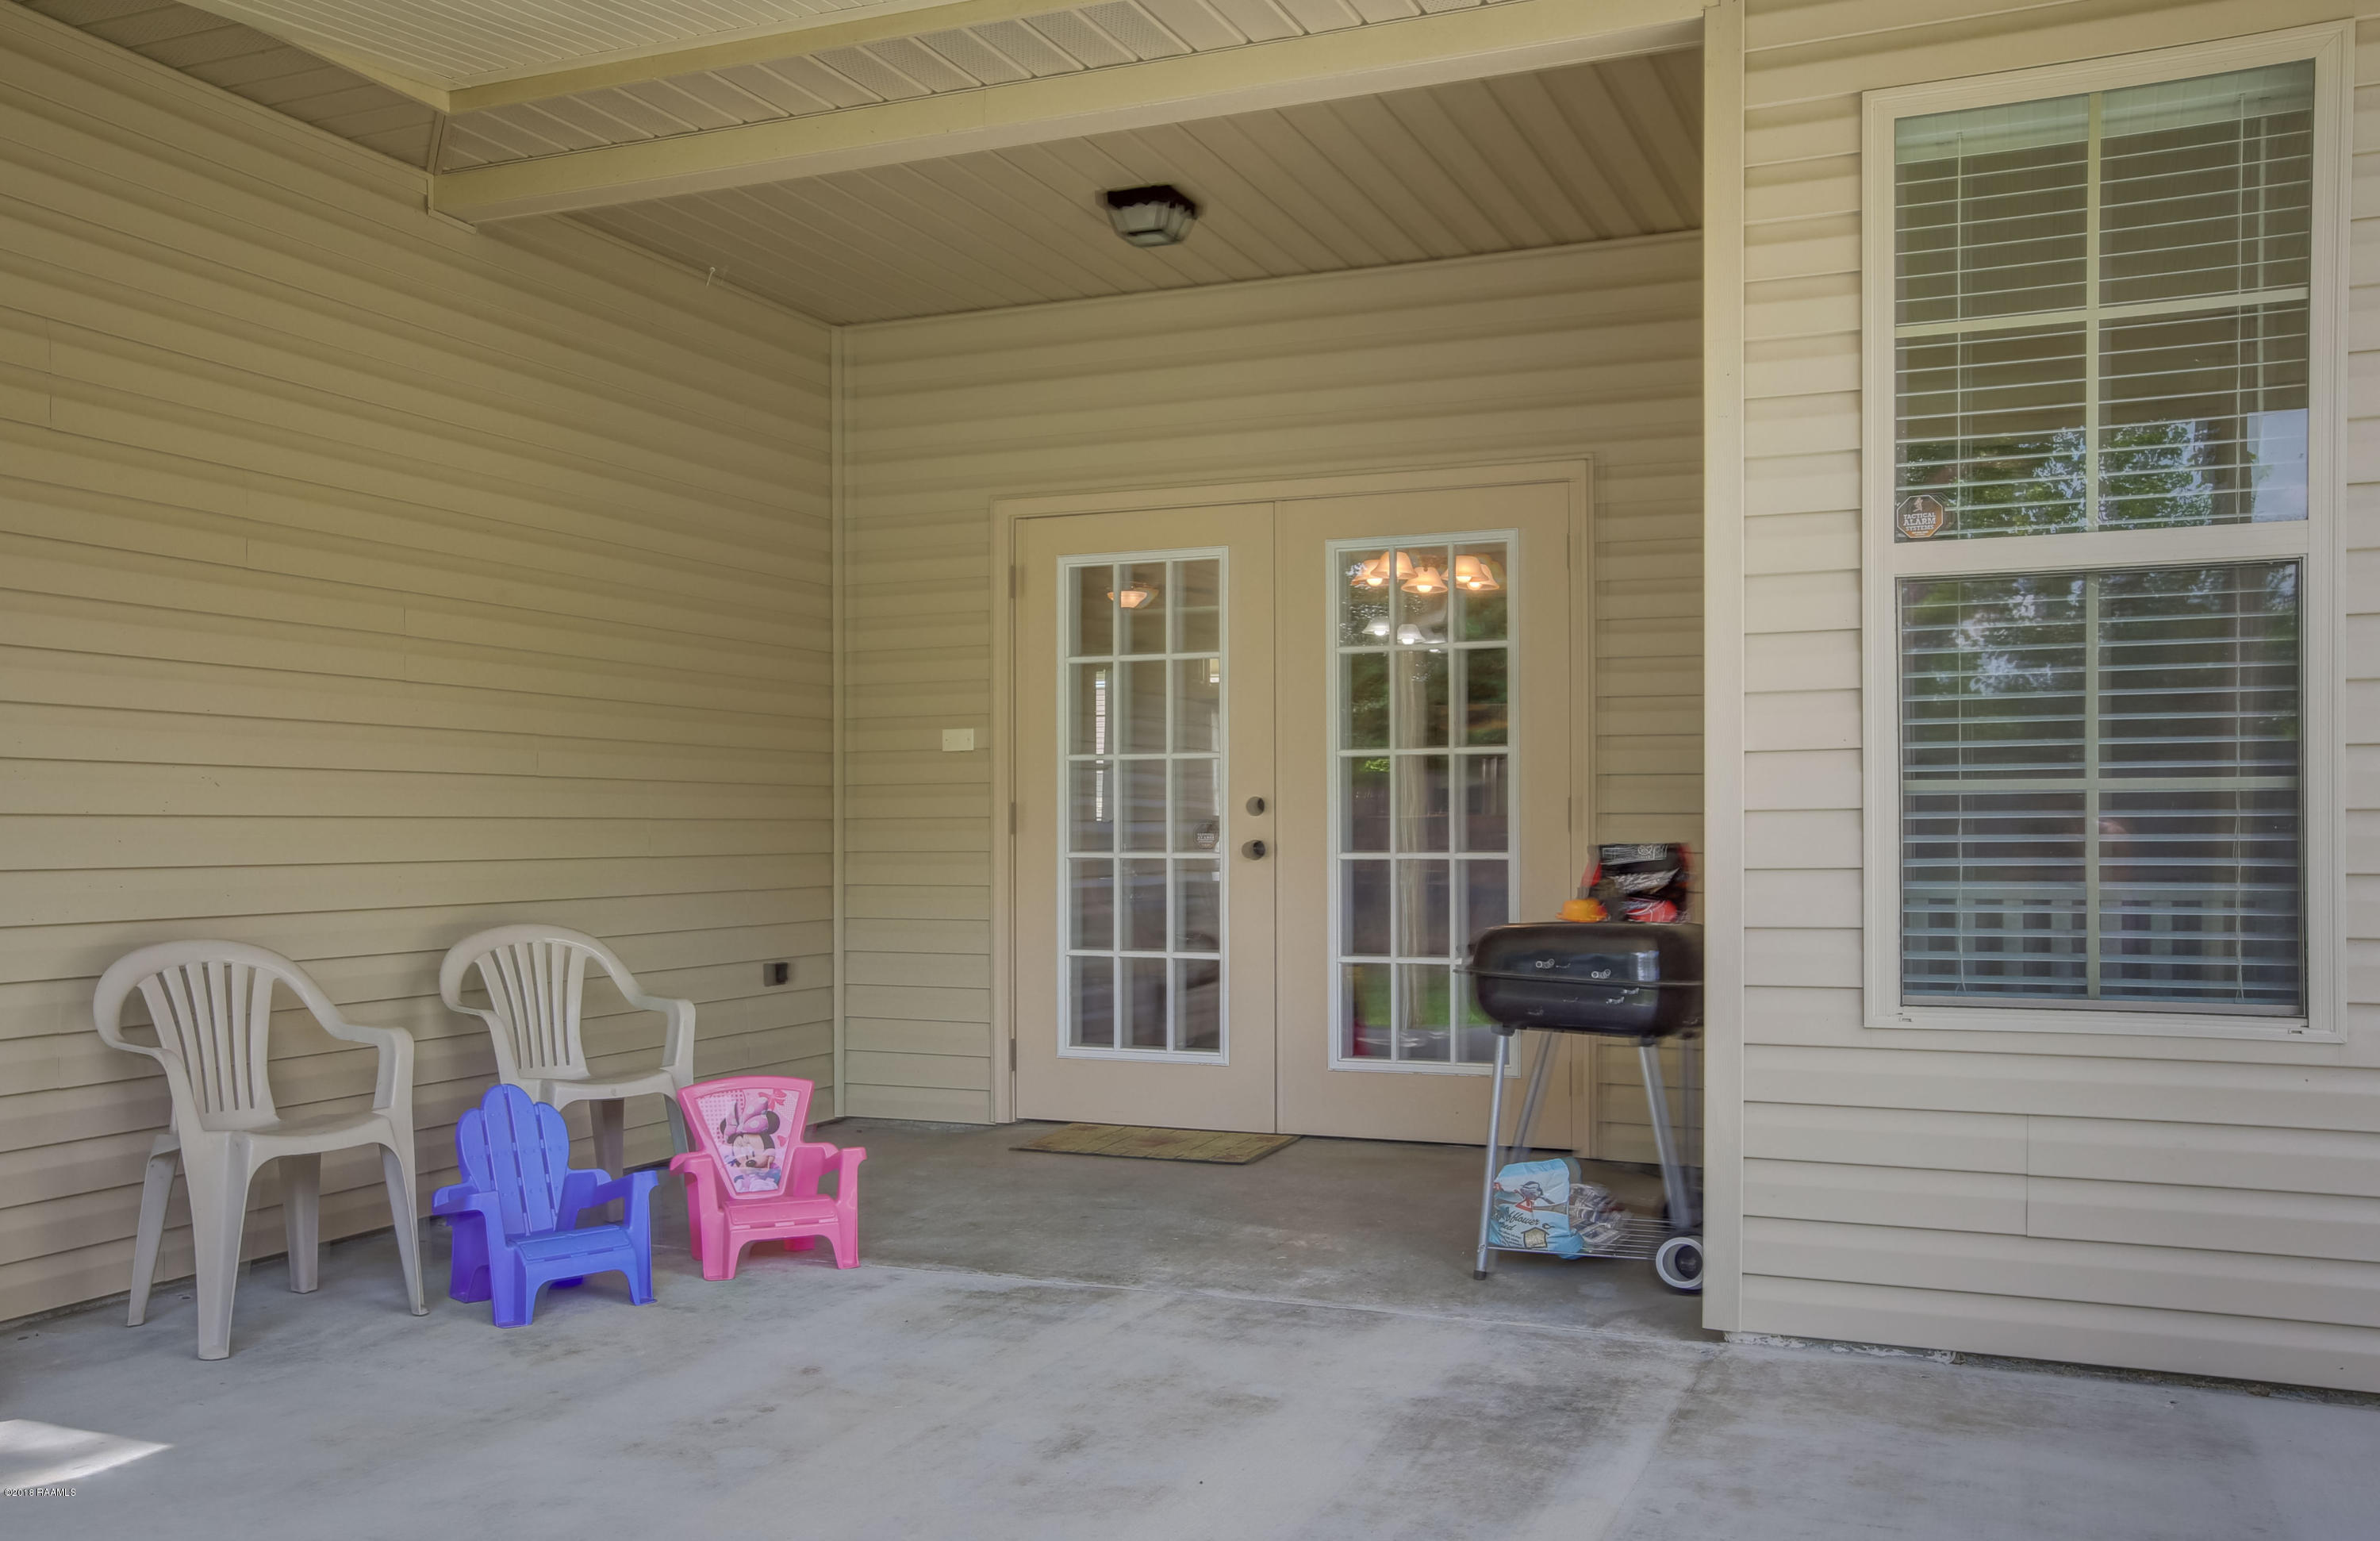 906 Pelican Ridge Cove, Carencro, LA 70520 Photo #25